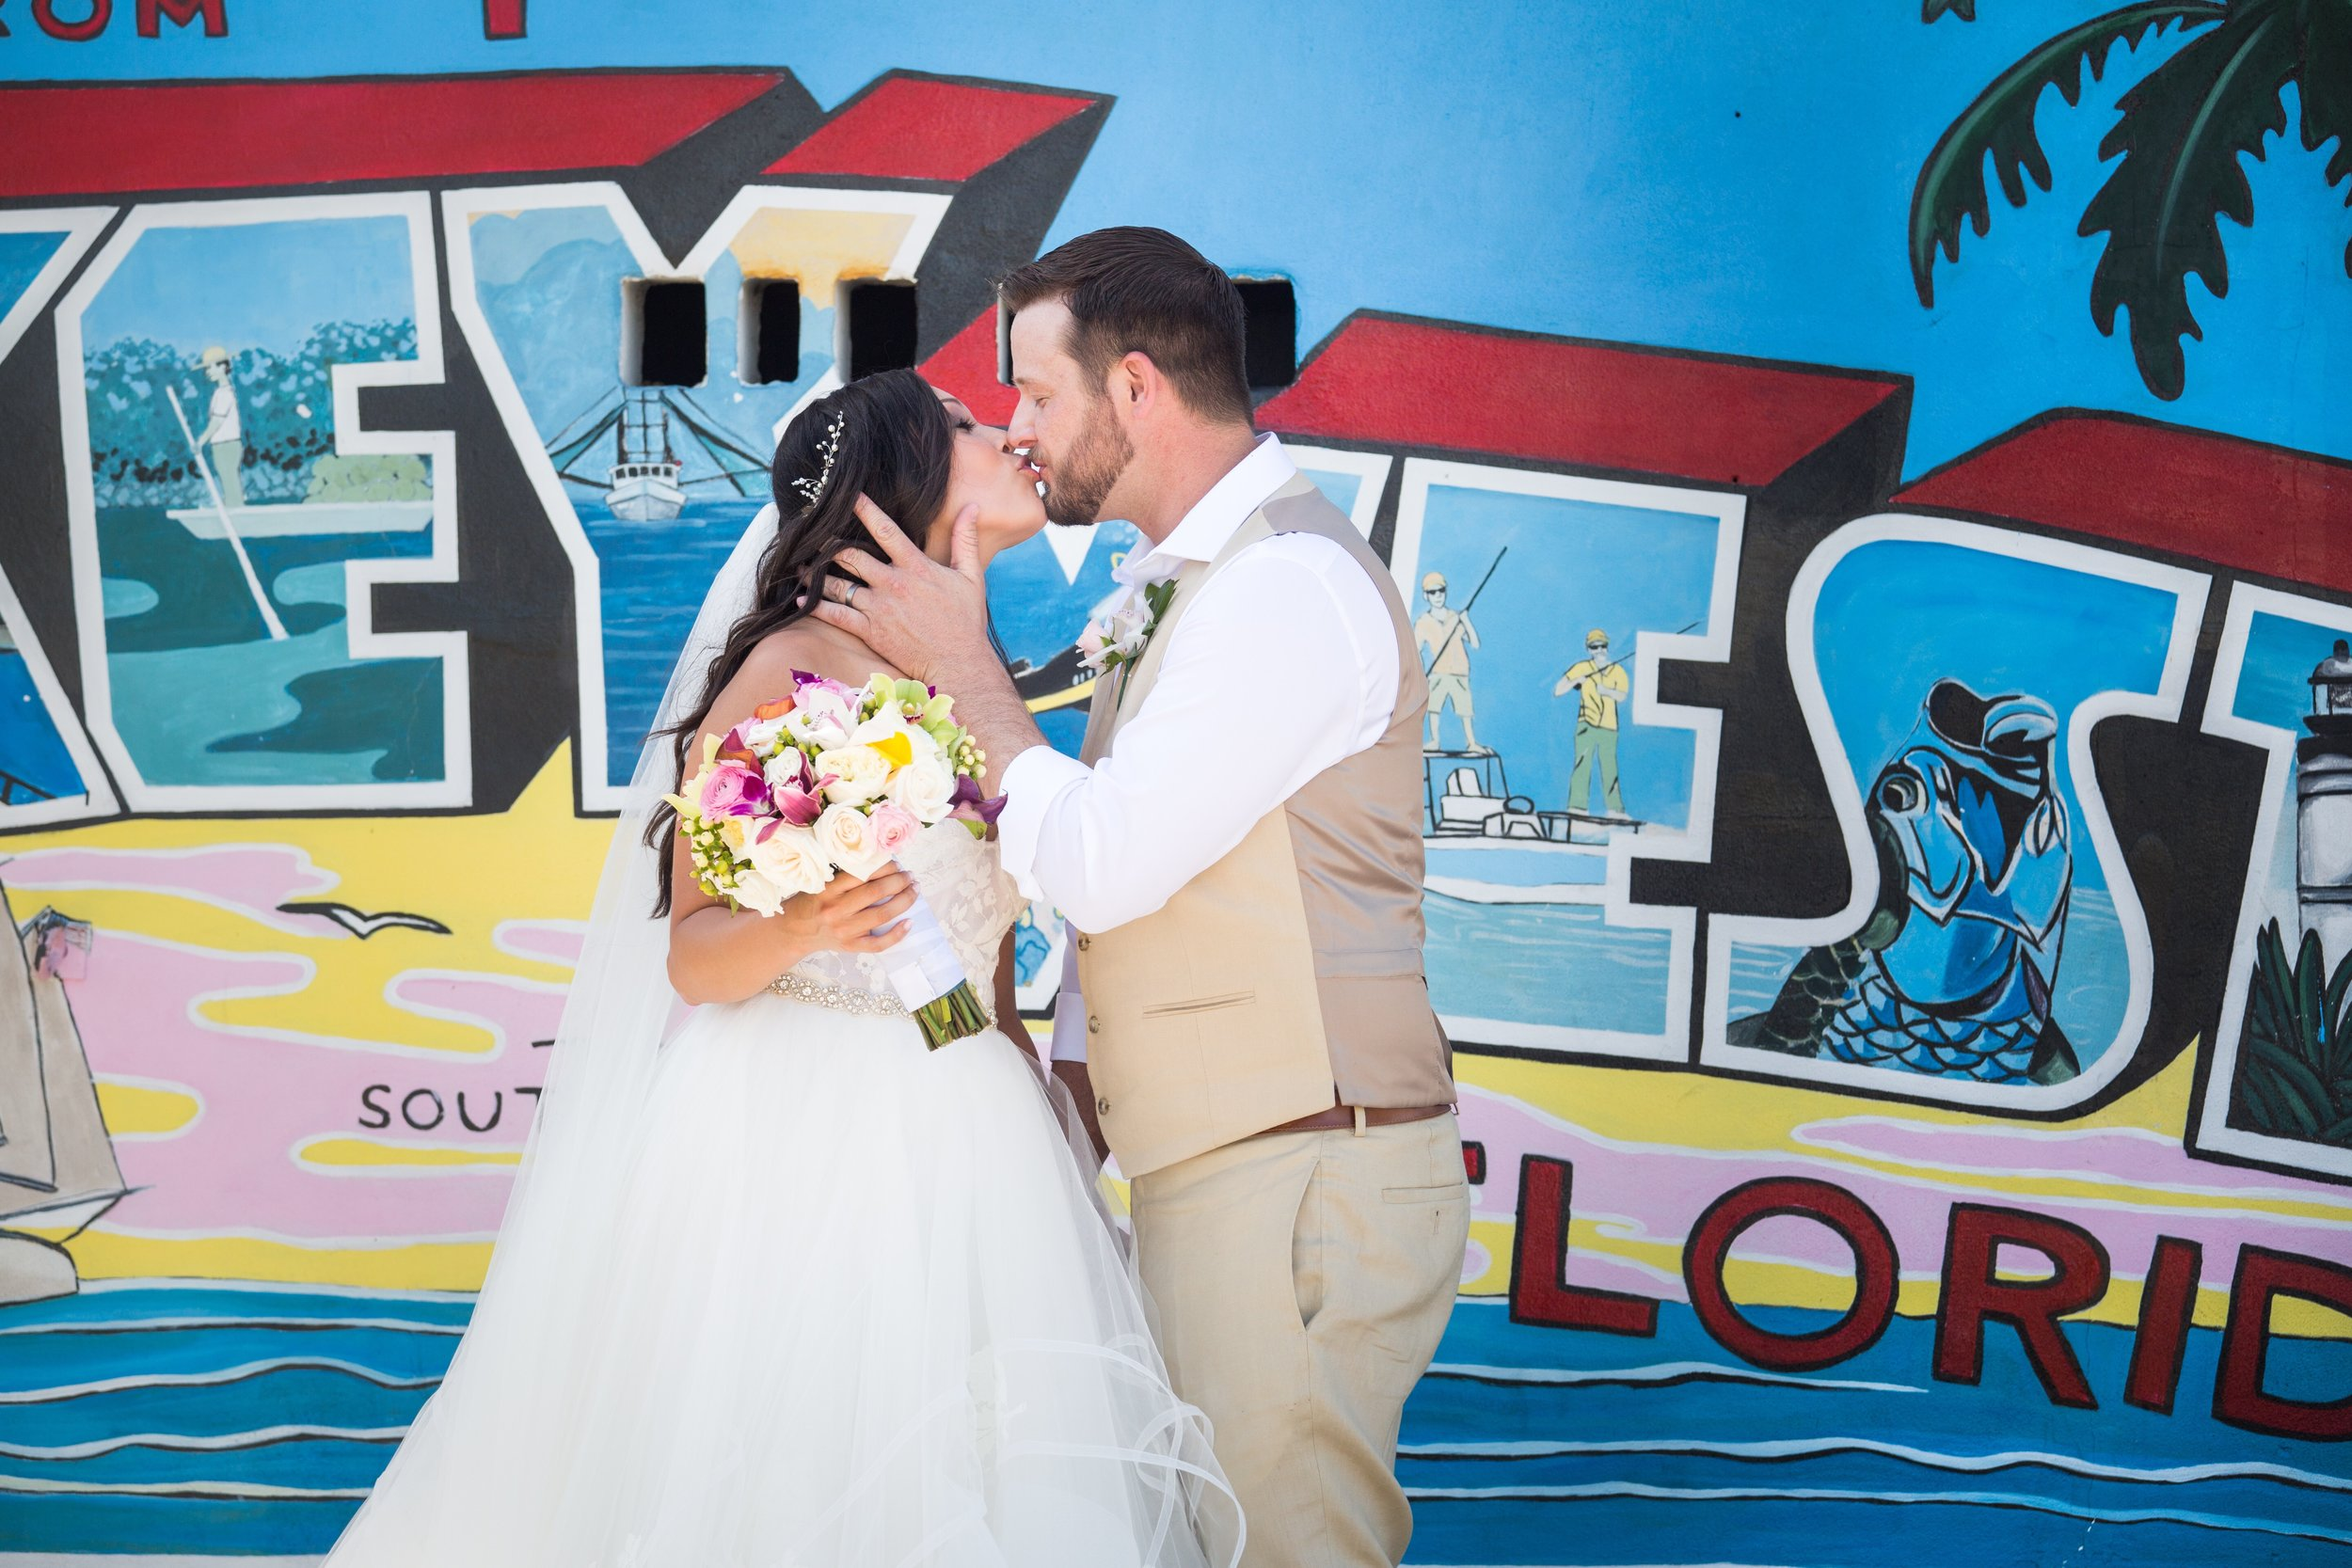 Couple kissing on wedding day in front of Key West postcard muralJPG